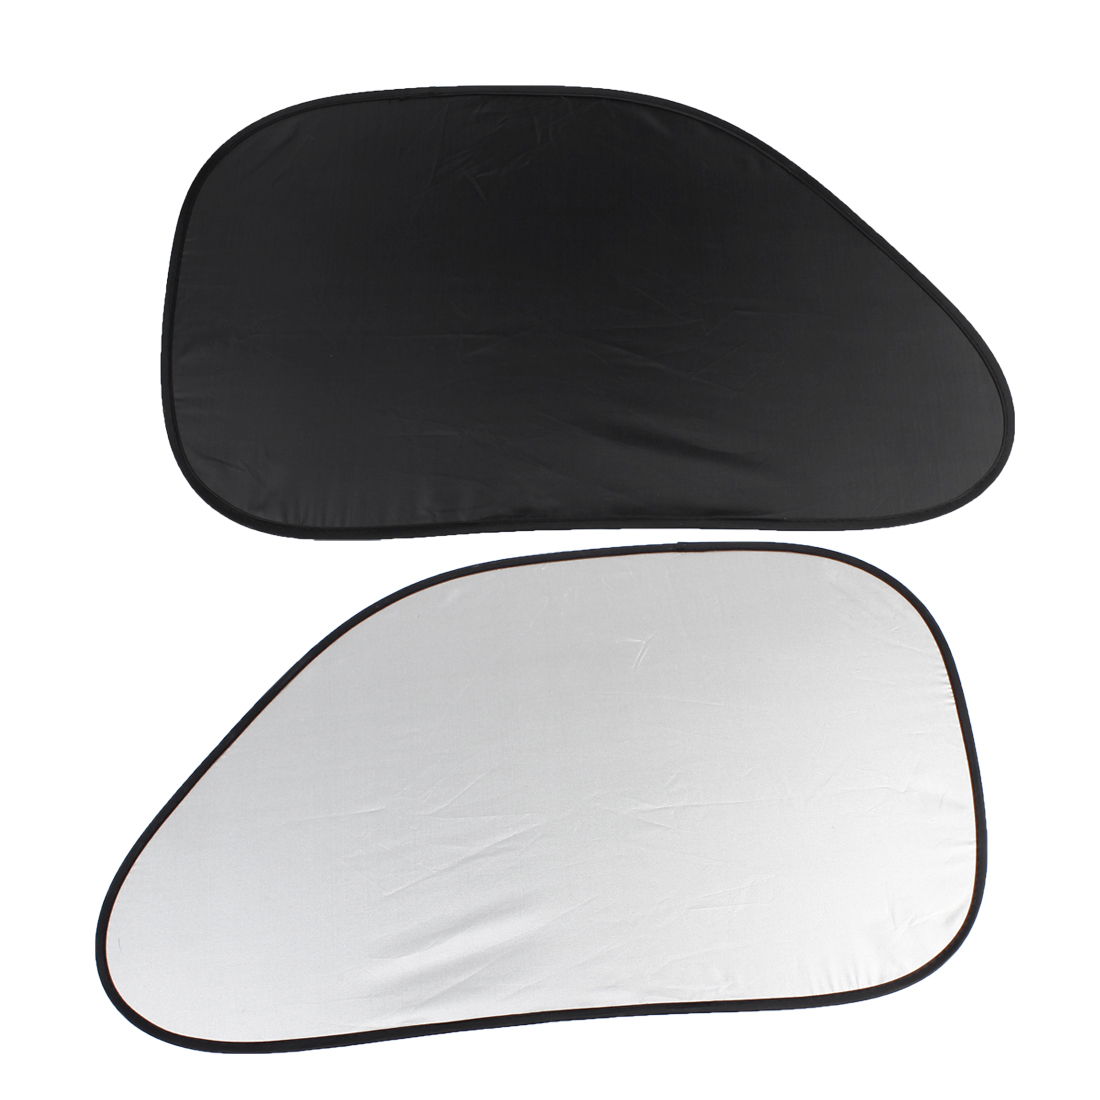 2 Pcs Black Polyester Car Automobile Side Window Sunshade w Suction Cups